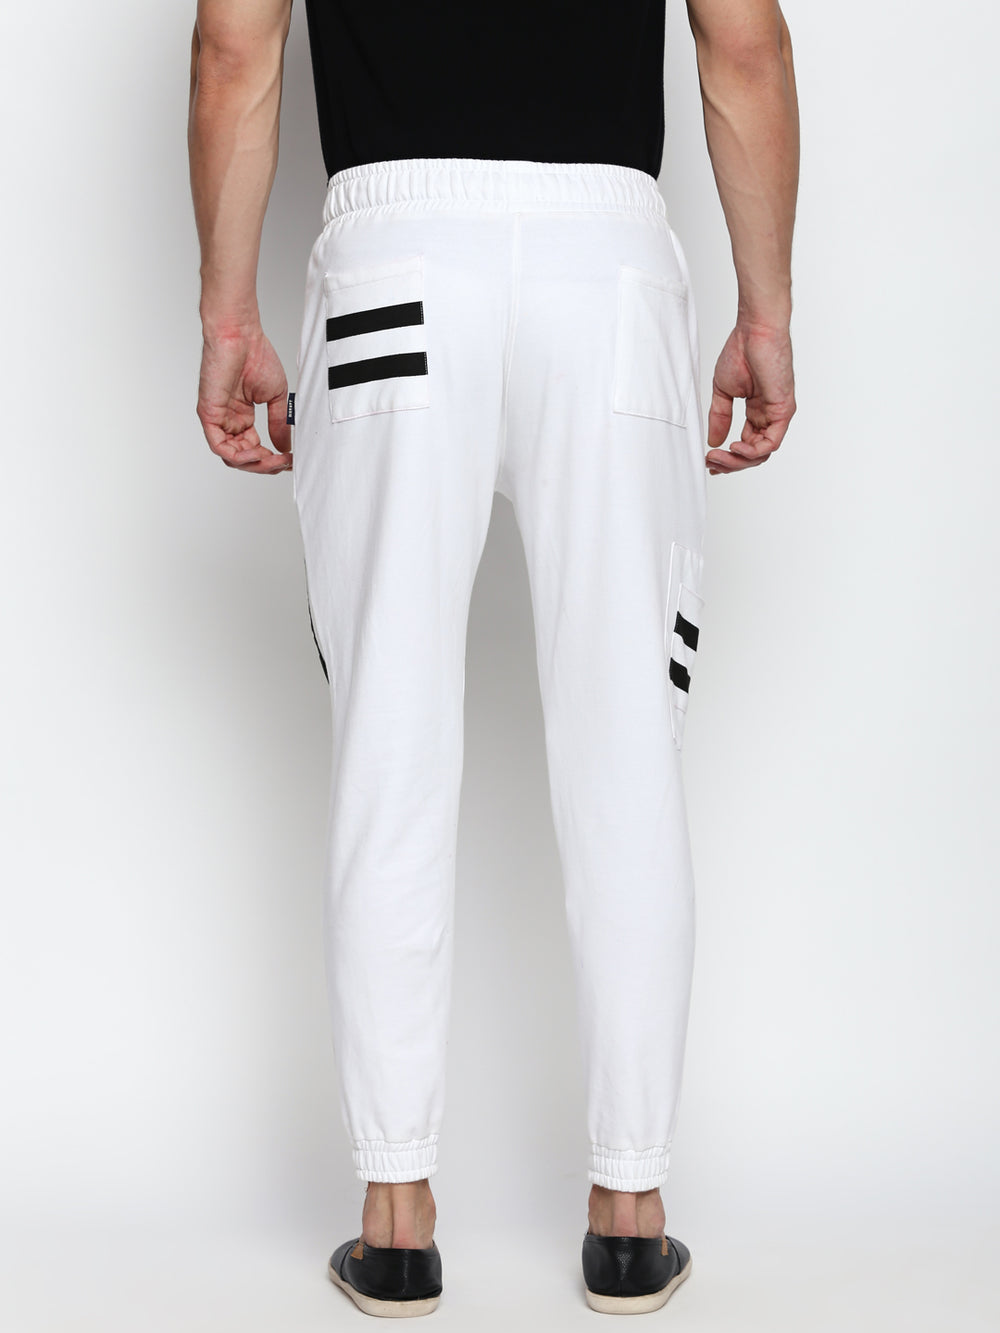 Disrupt White Cotton Joggers